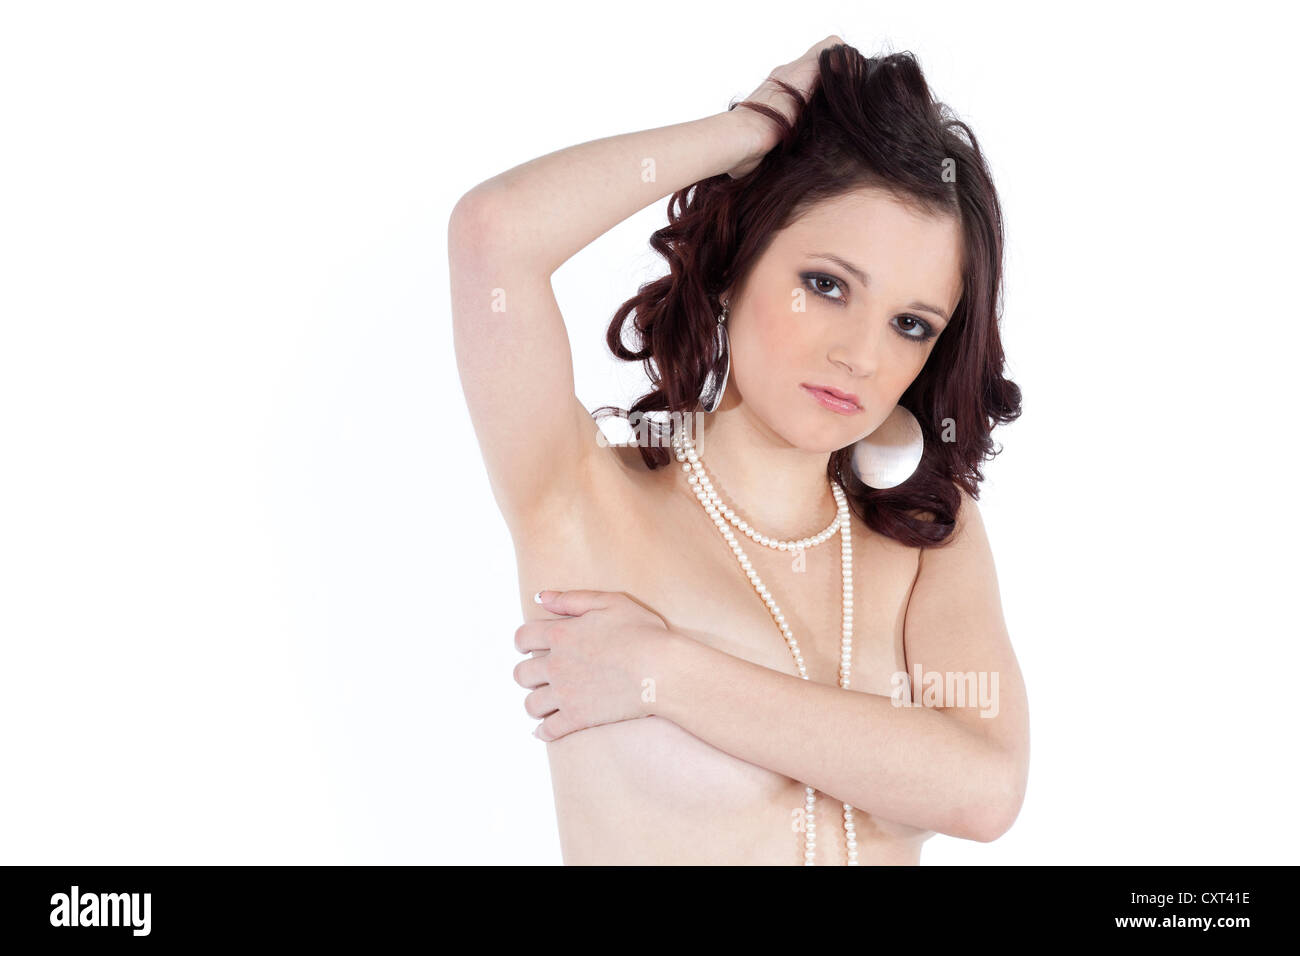 Stock Photo  Young Woman With A Bare Chest Wearing A Pearl Necklace,  Covered Partial Nude, Sensual